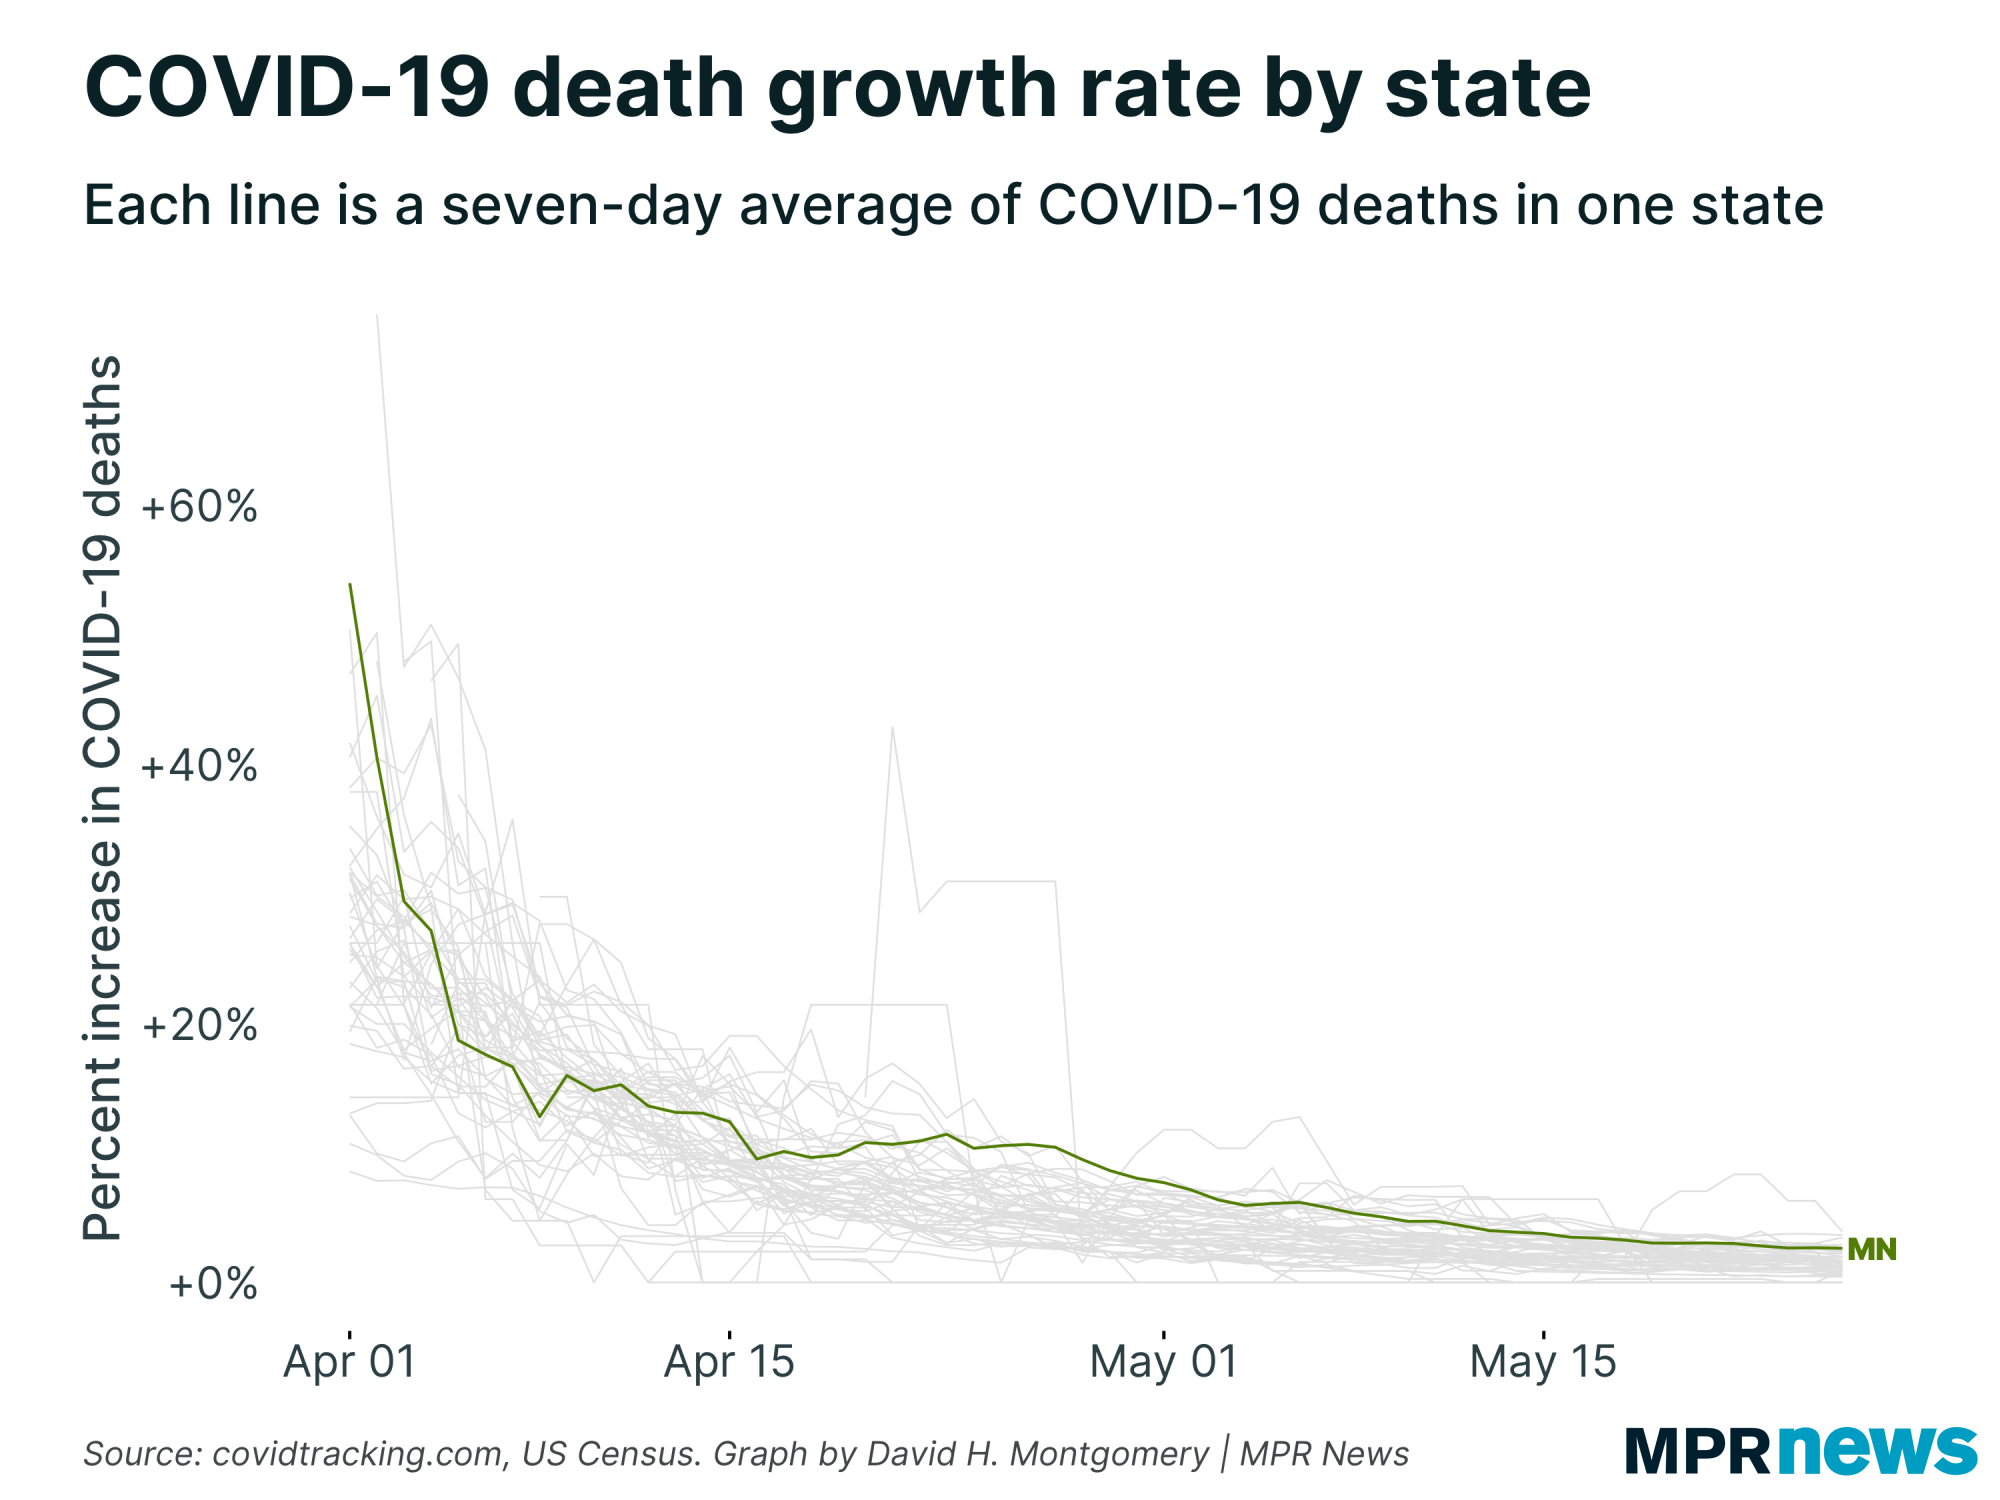 Growth of COVID-19 deaths in Minnesota vs. other states